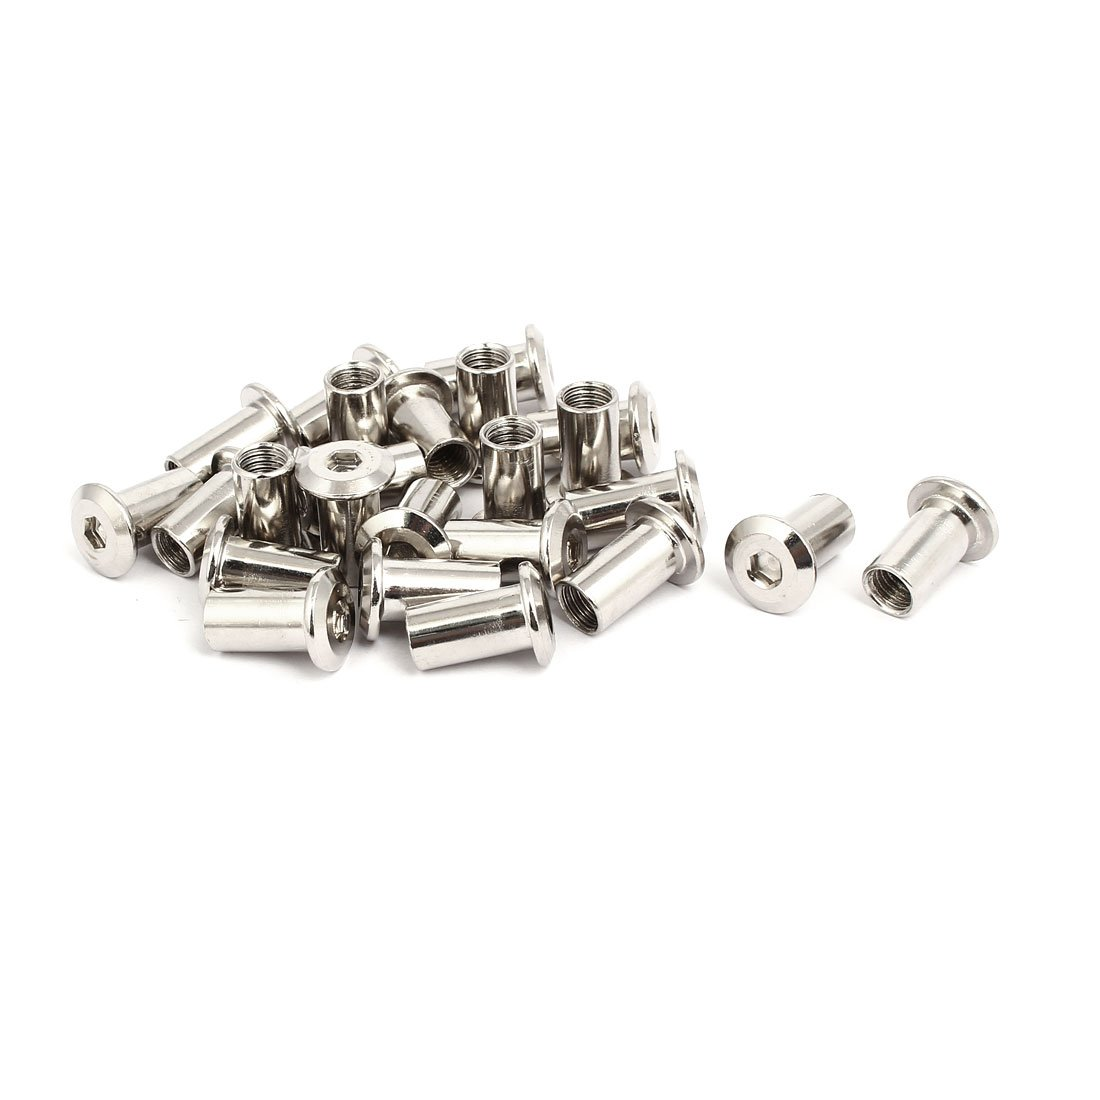 uxcell M8x18mm Female Thread Hex Socket Head Barrel Nut Furniture Fittings 24pcs